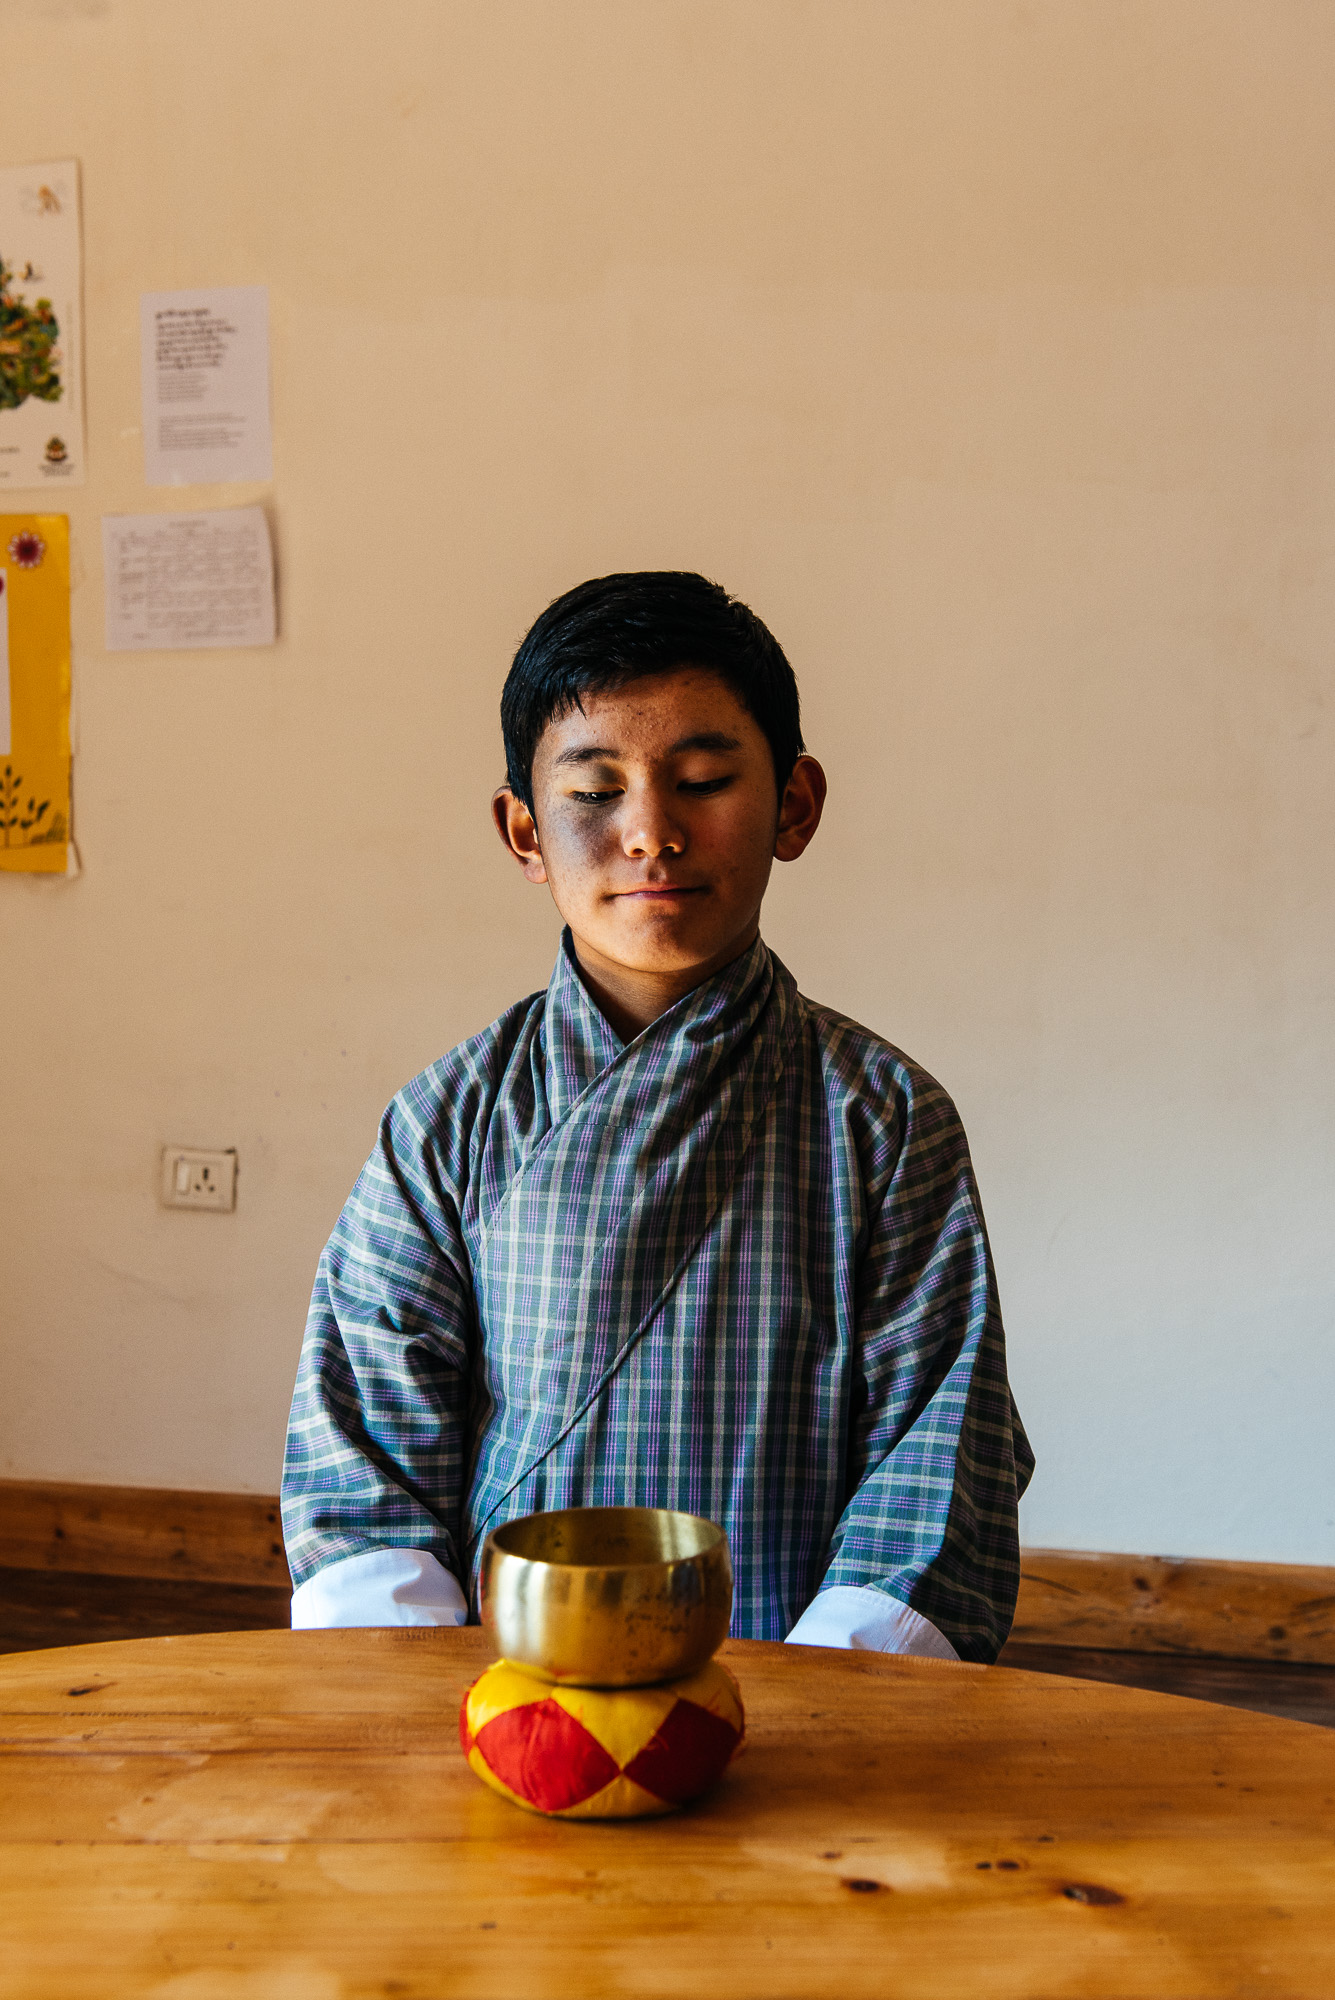 Sonam Tenzin, 13 years old, a student of Deki Choden